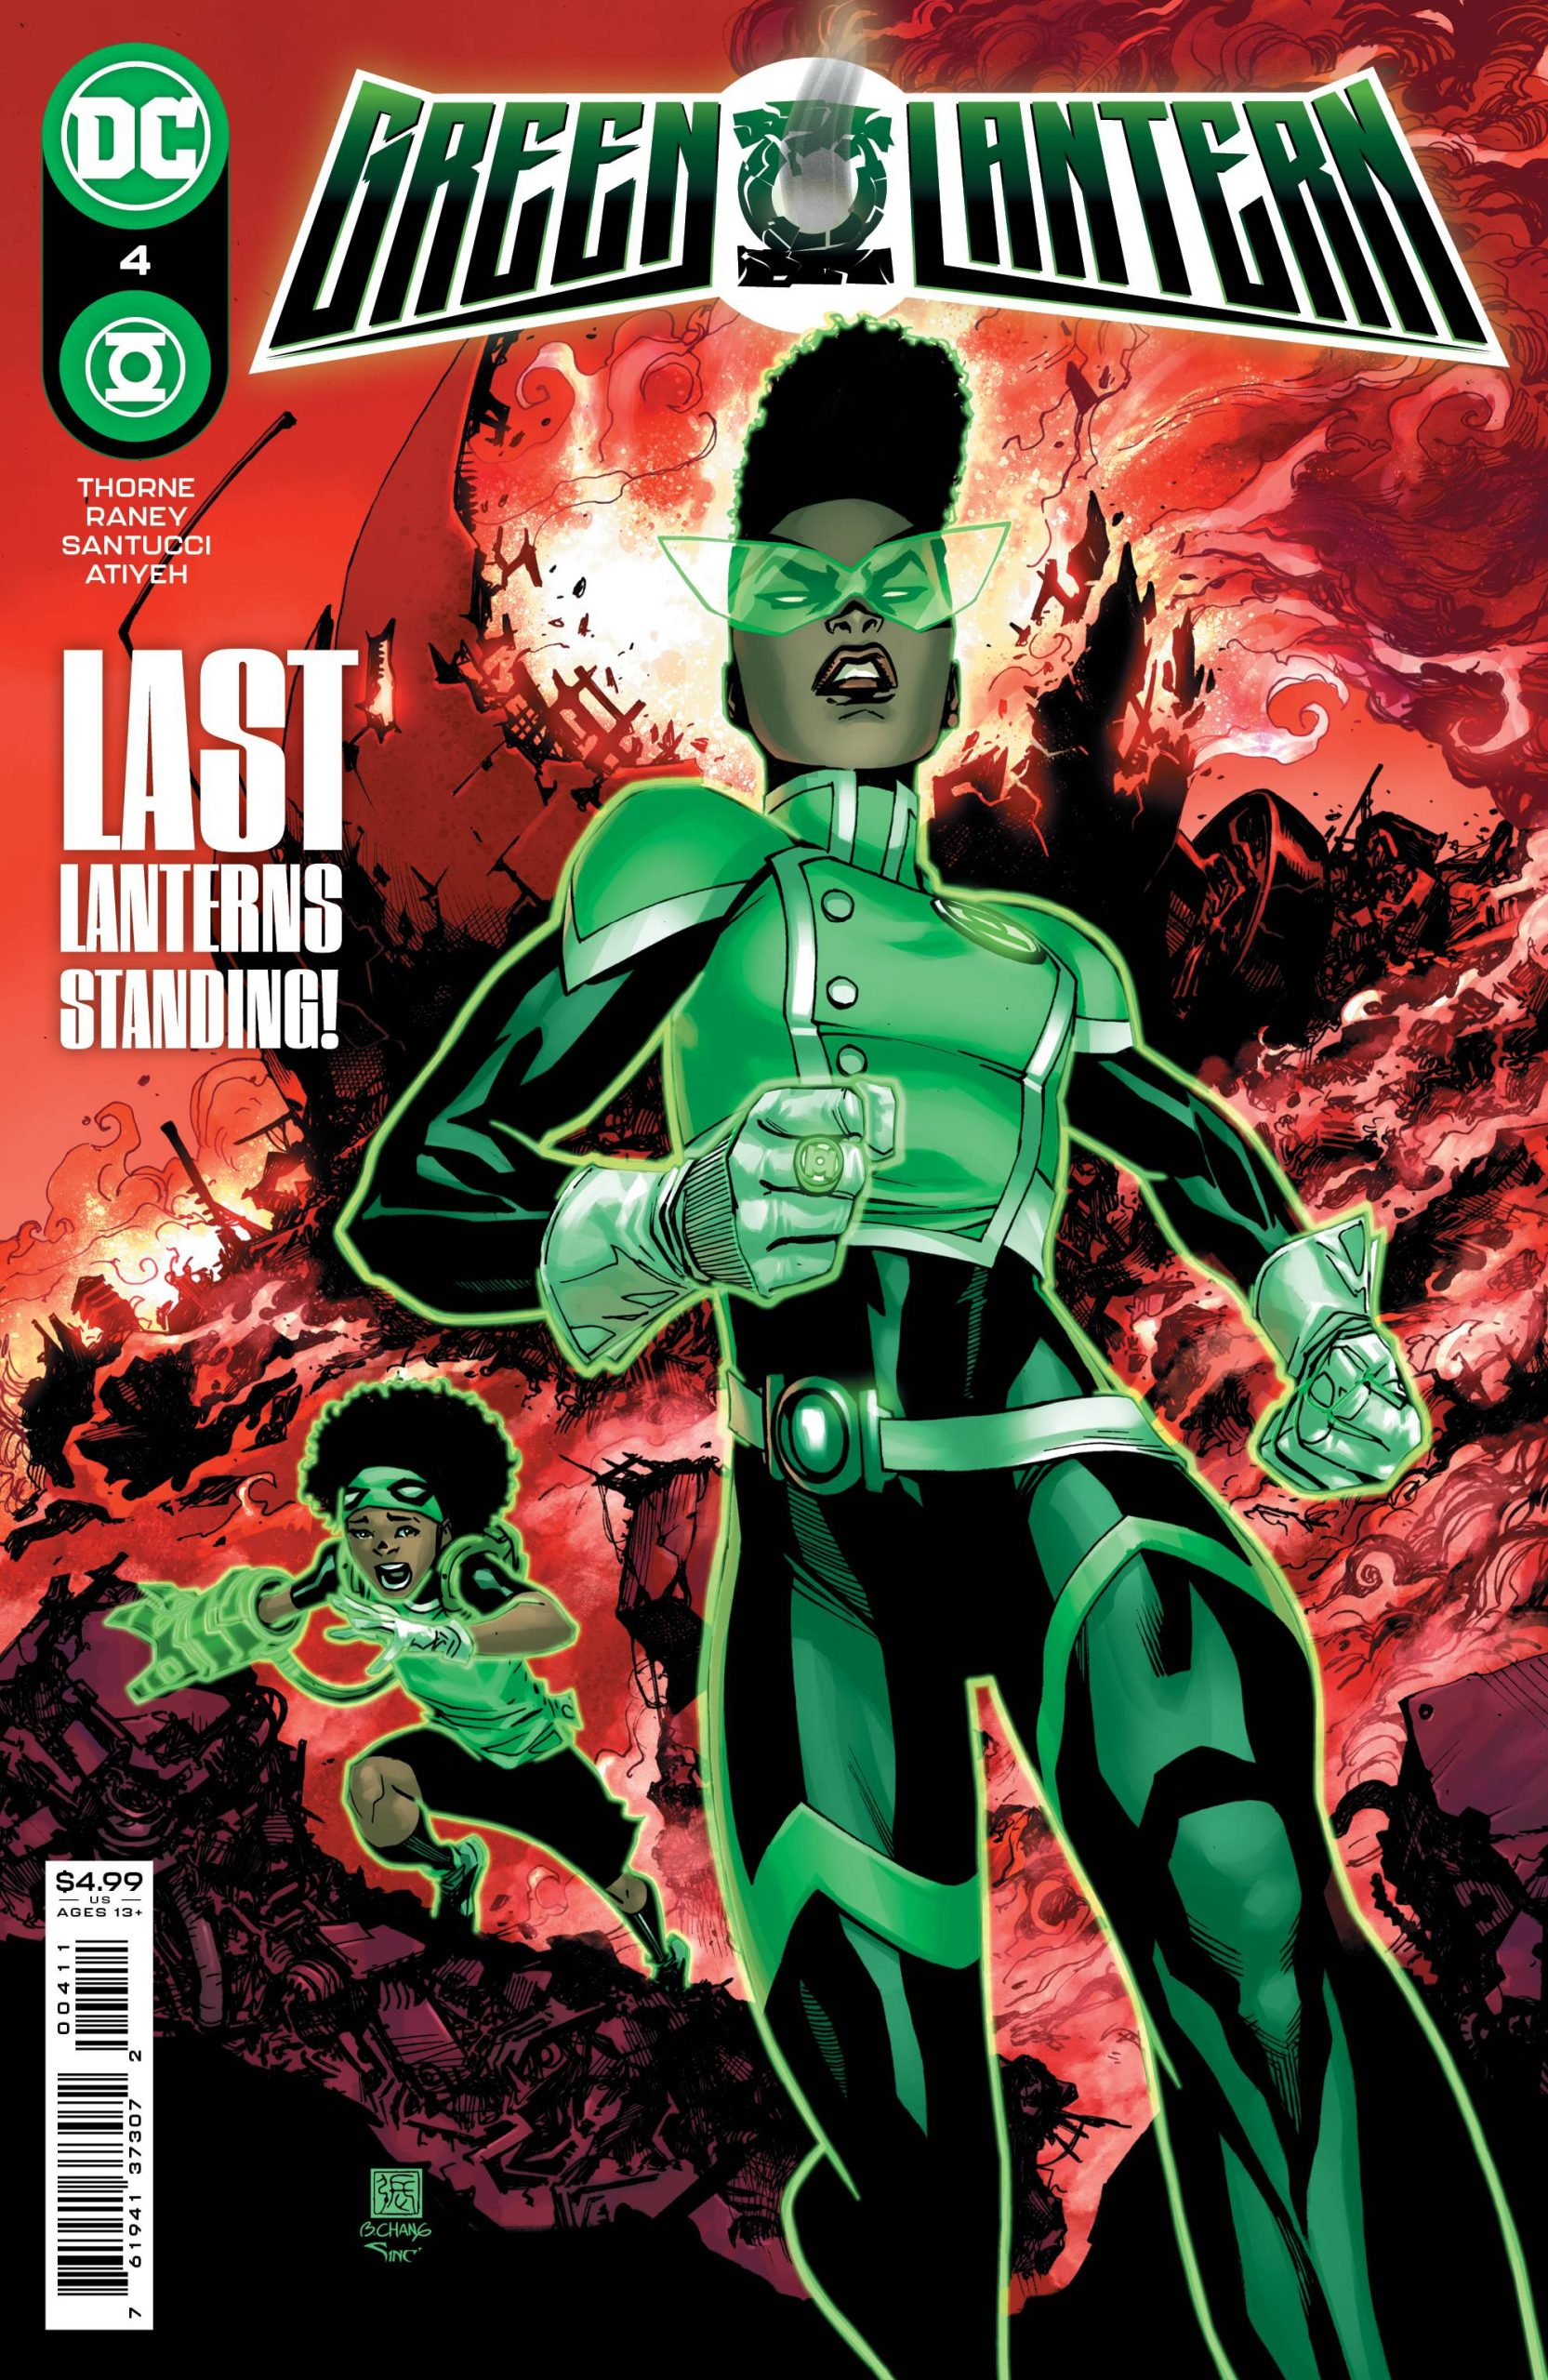 Green-Lantern-4-spoilers-0-1-scaled-1 Green-Lantern-4-spoilers-0-1-scaled-1